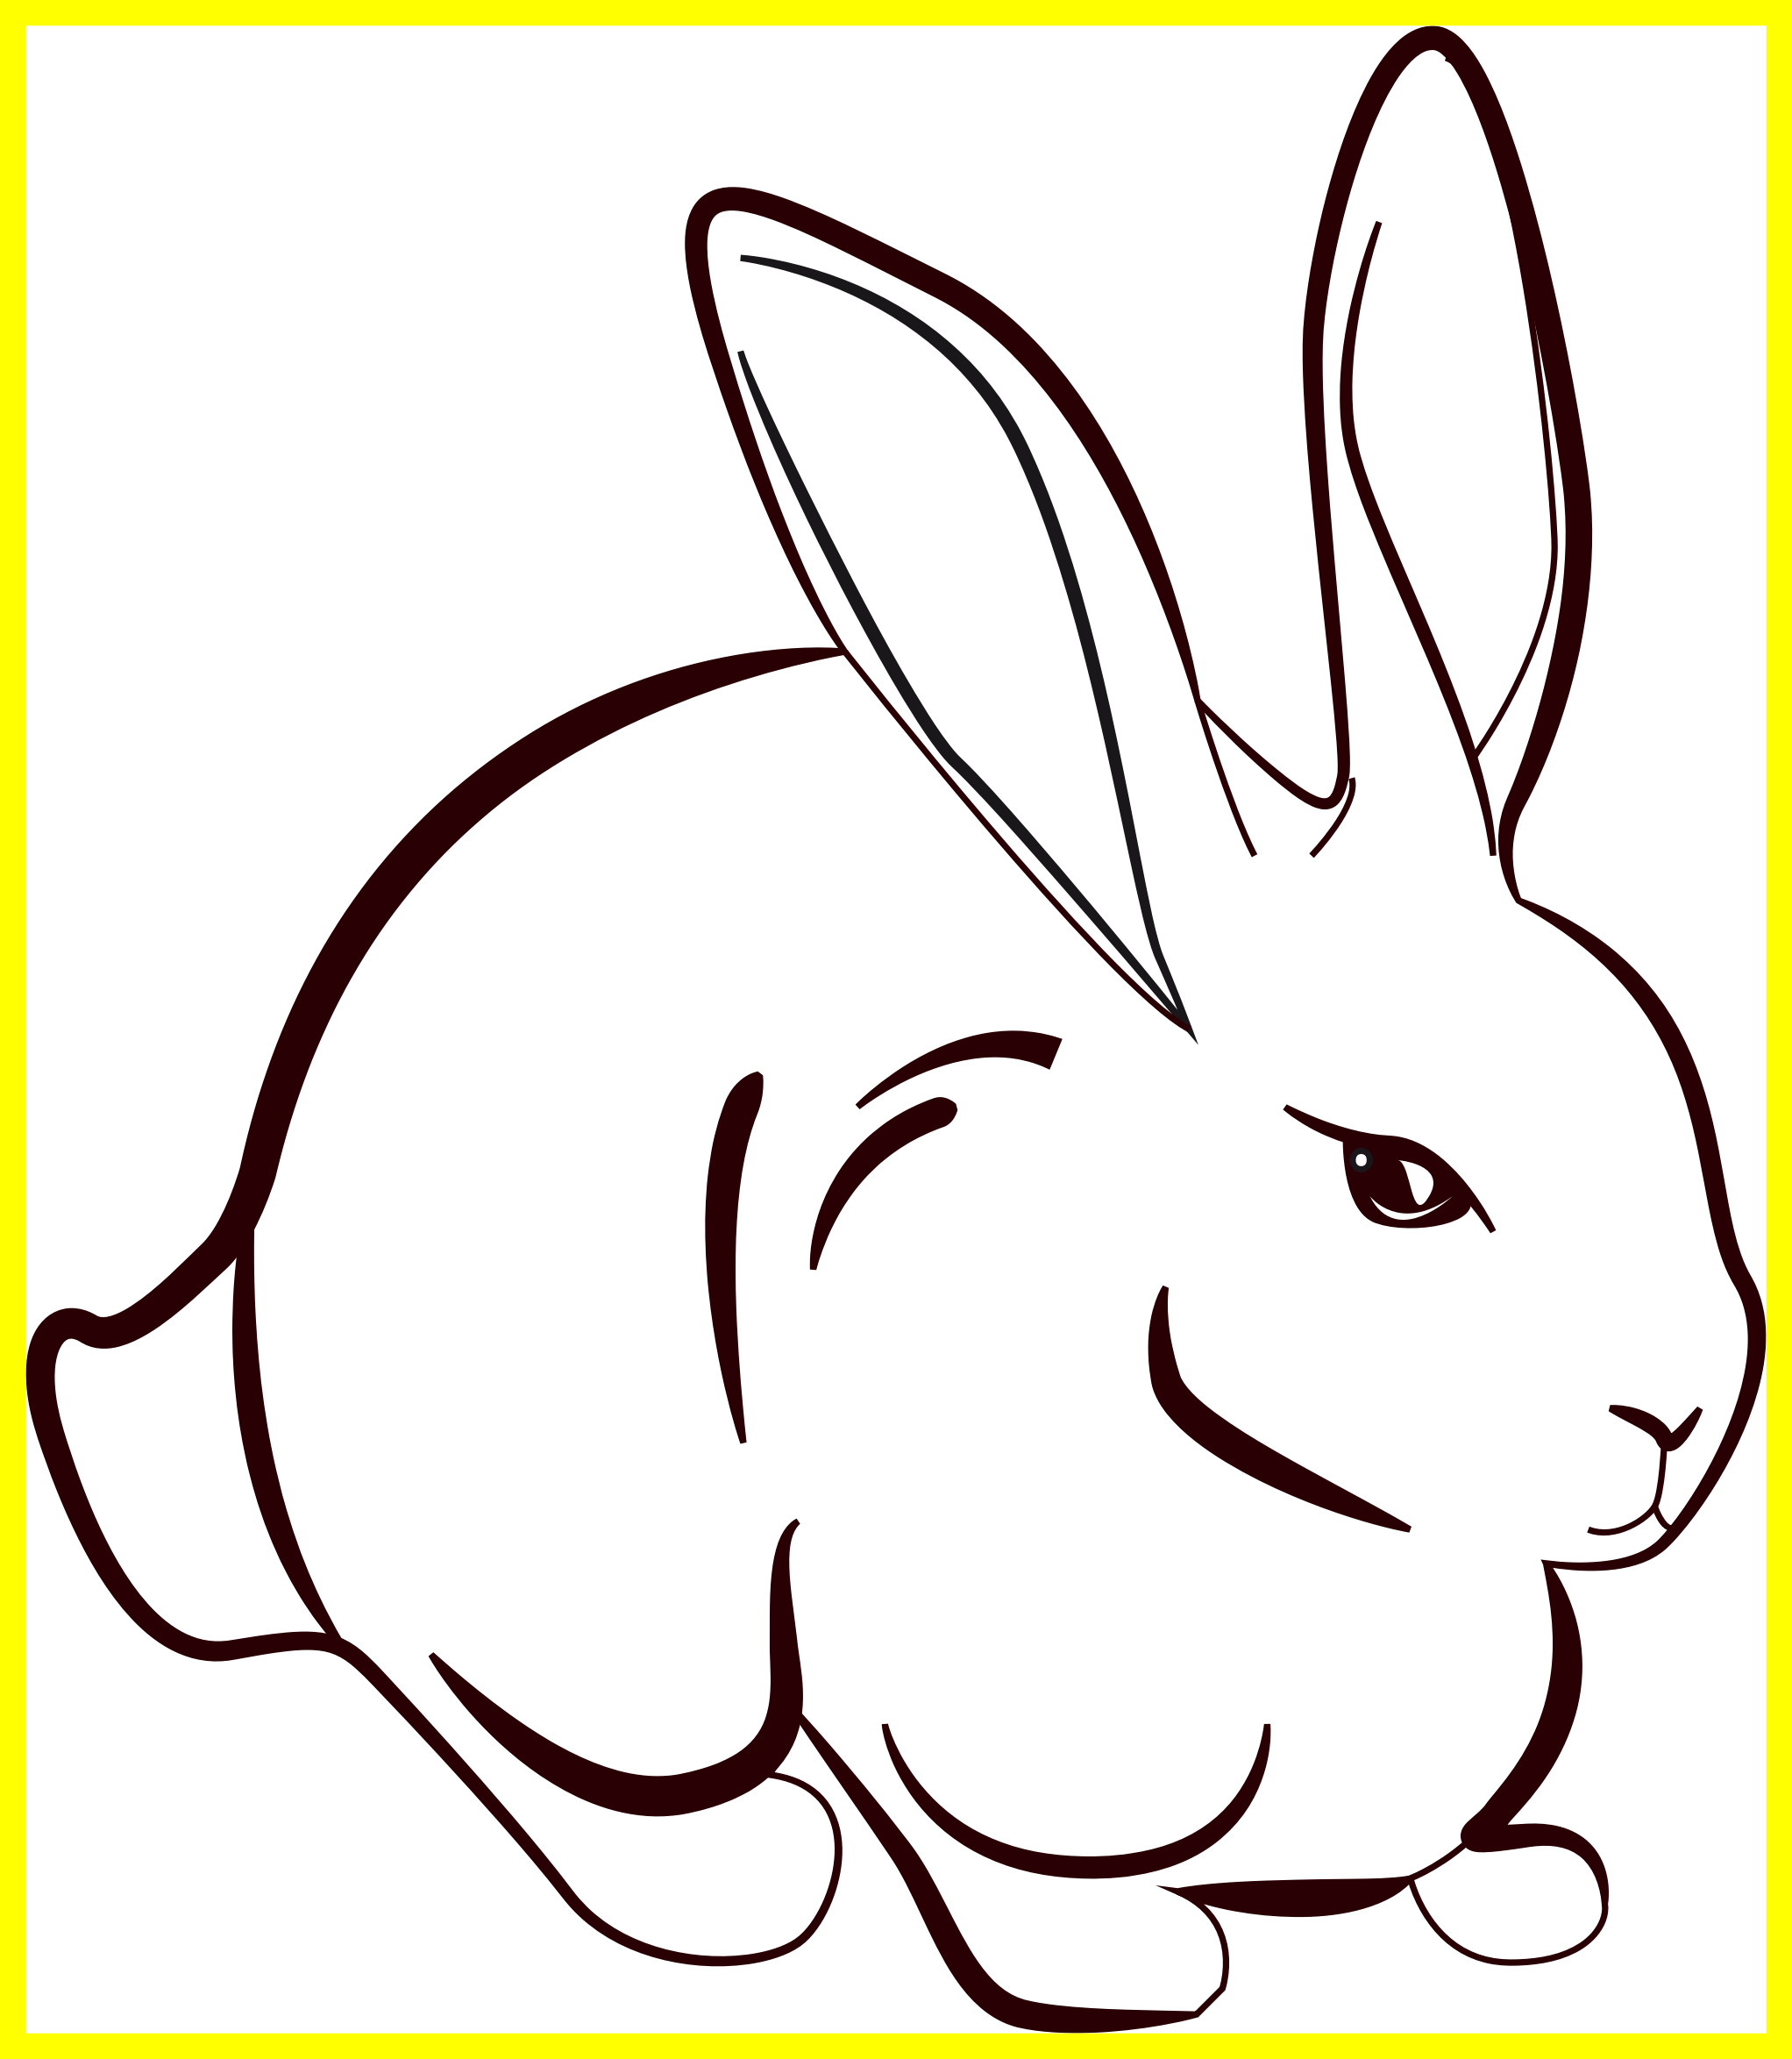 Cat dog and rabbit clipart clip transparent stock Amazing Rabbit Lineart Clipart Image For Line Drawing Trend And ... clip transparent stock